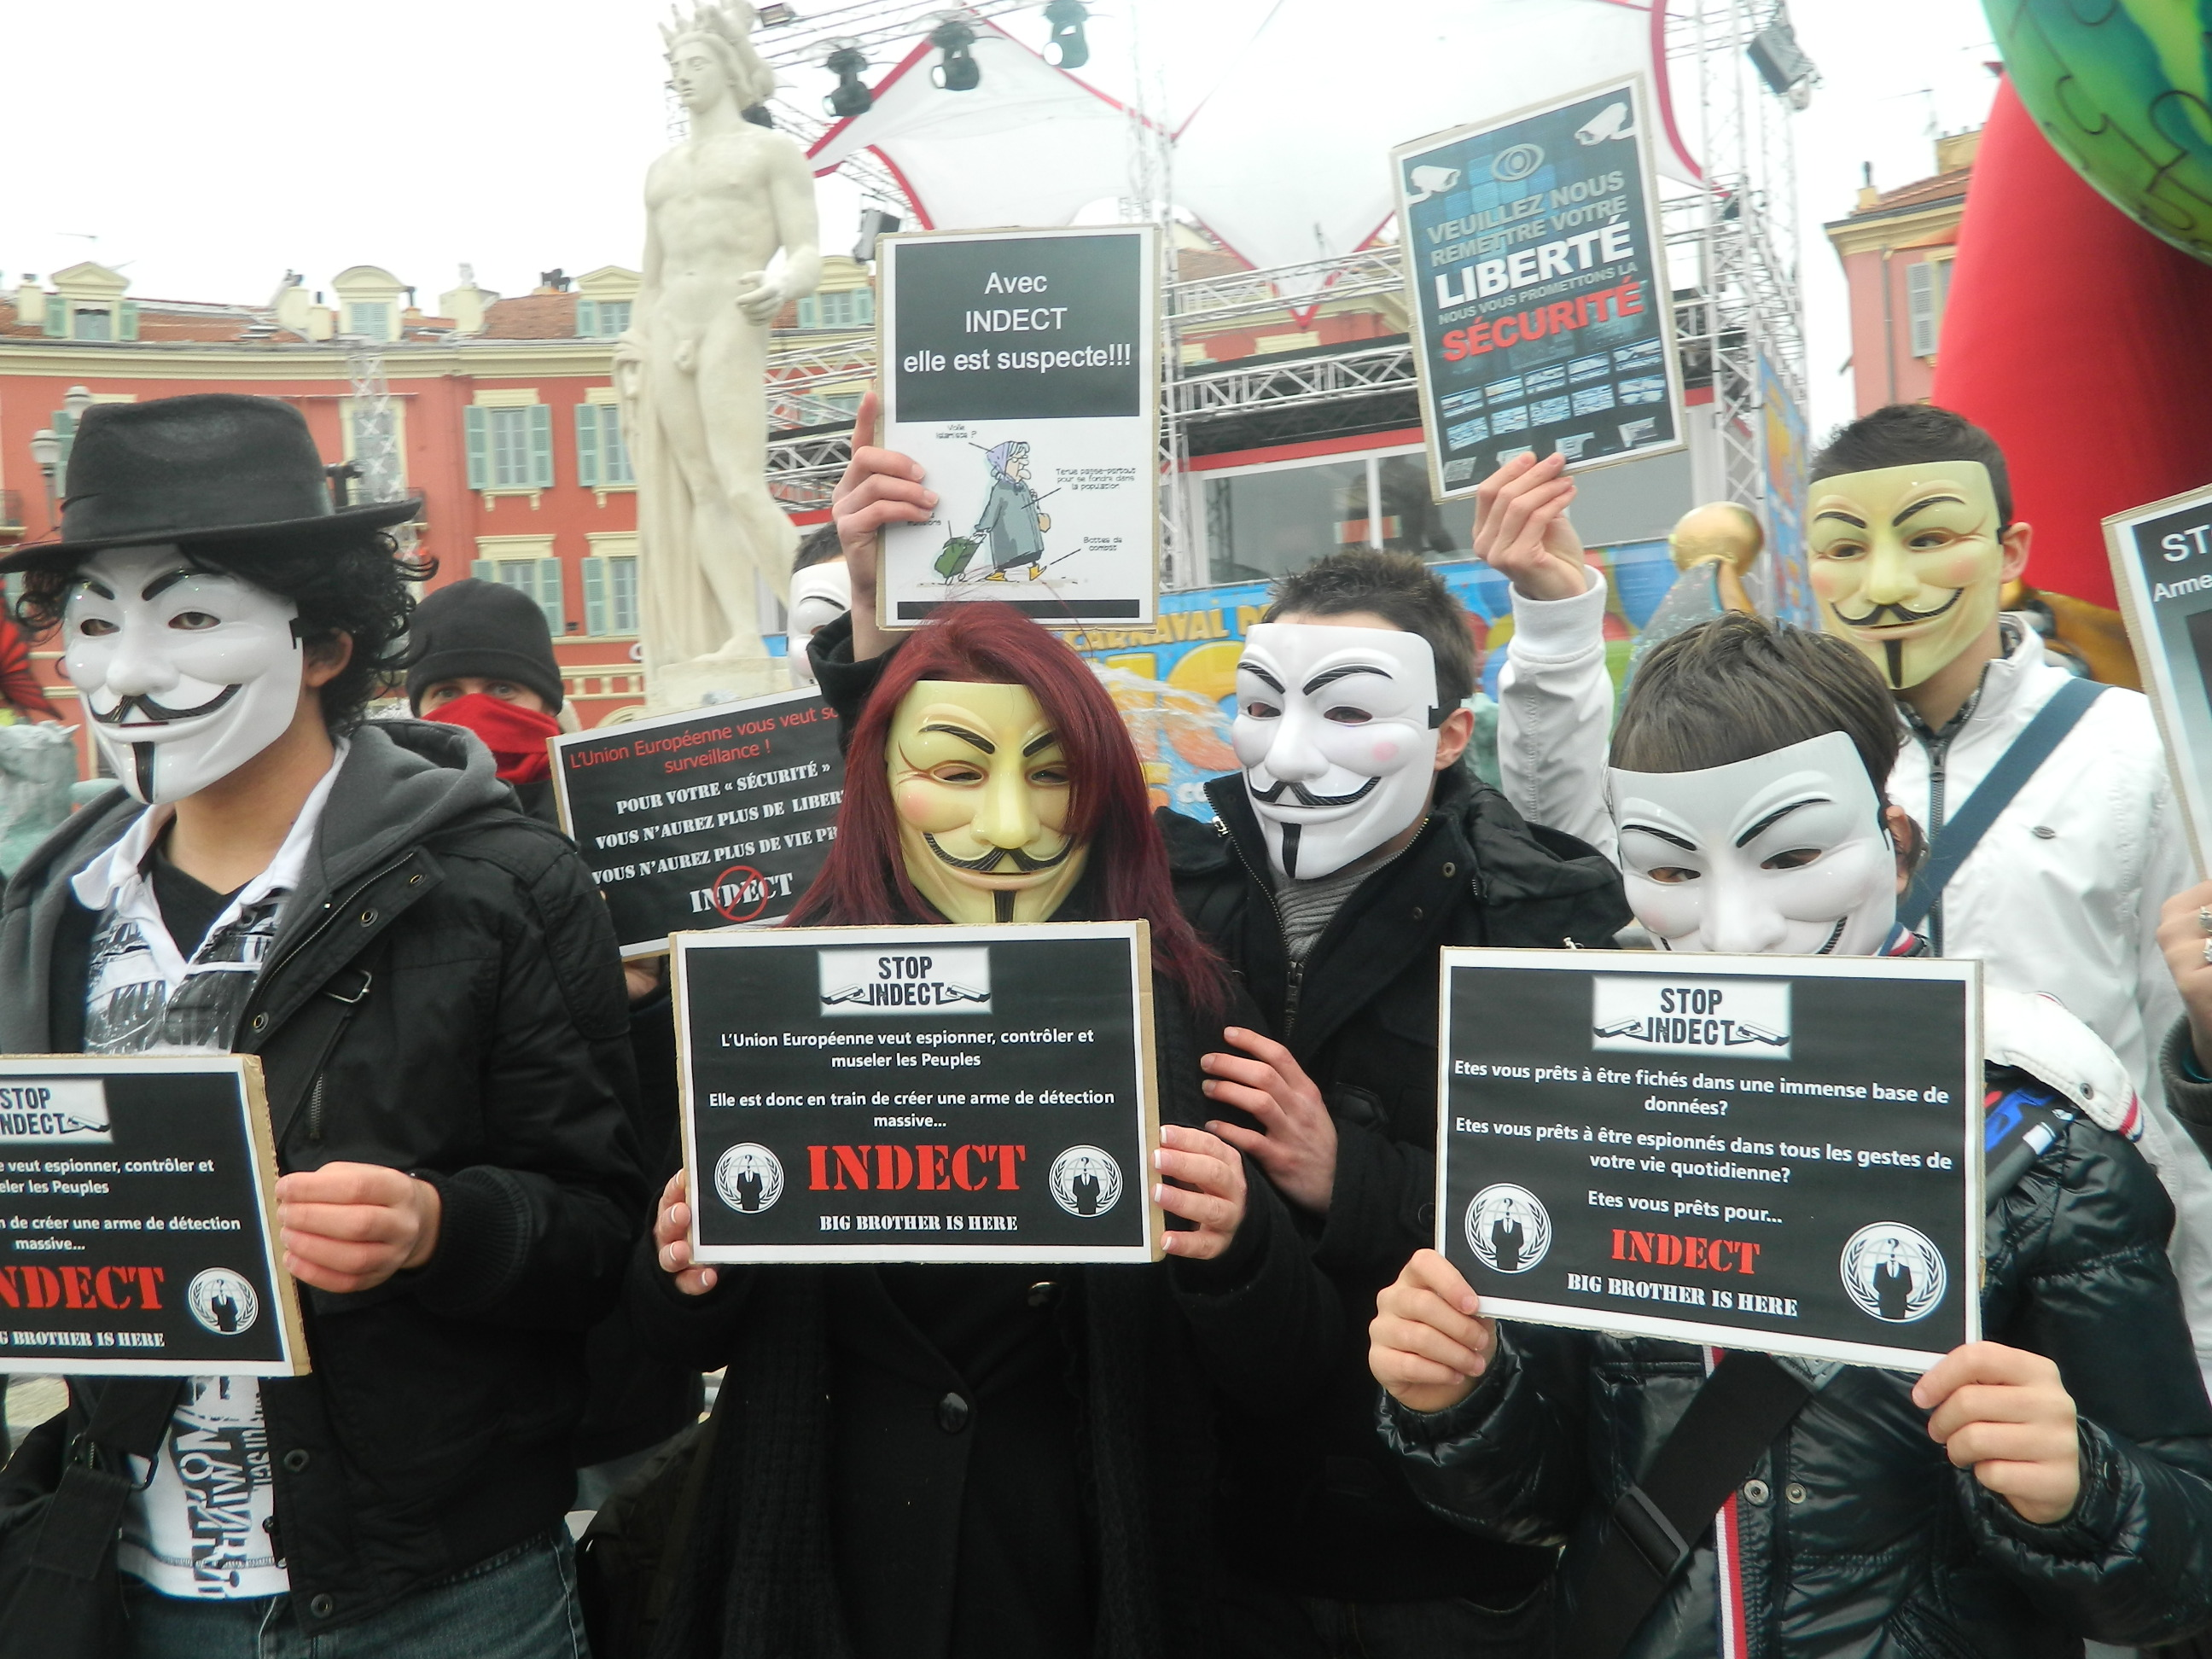 23 fev 2013, Nice répond présent à l'appel #Anonymous contre Big Brother / INDECT